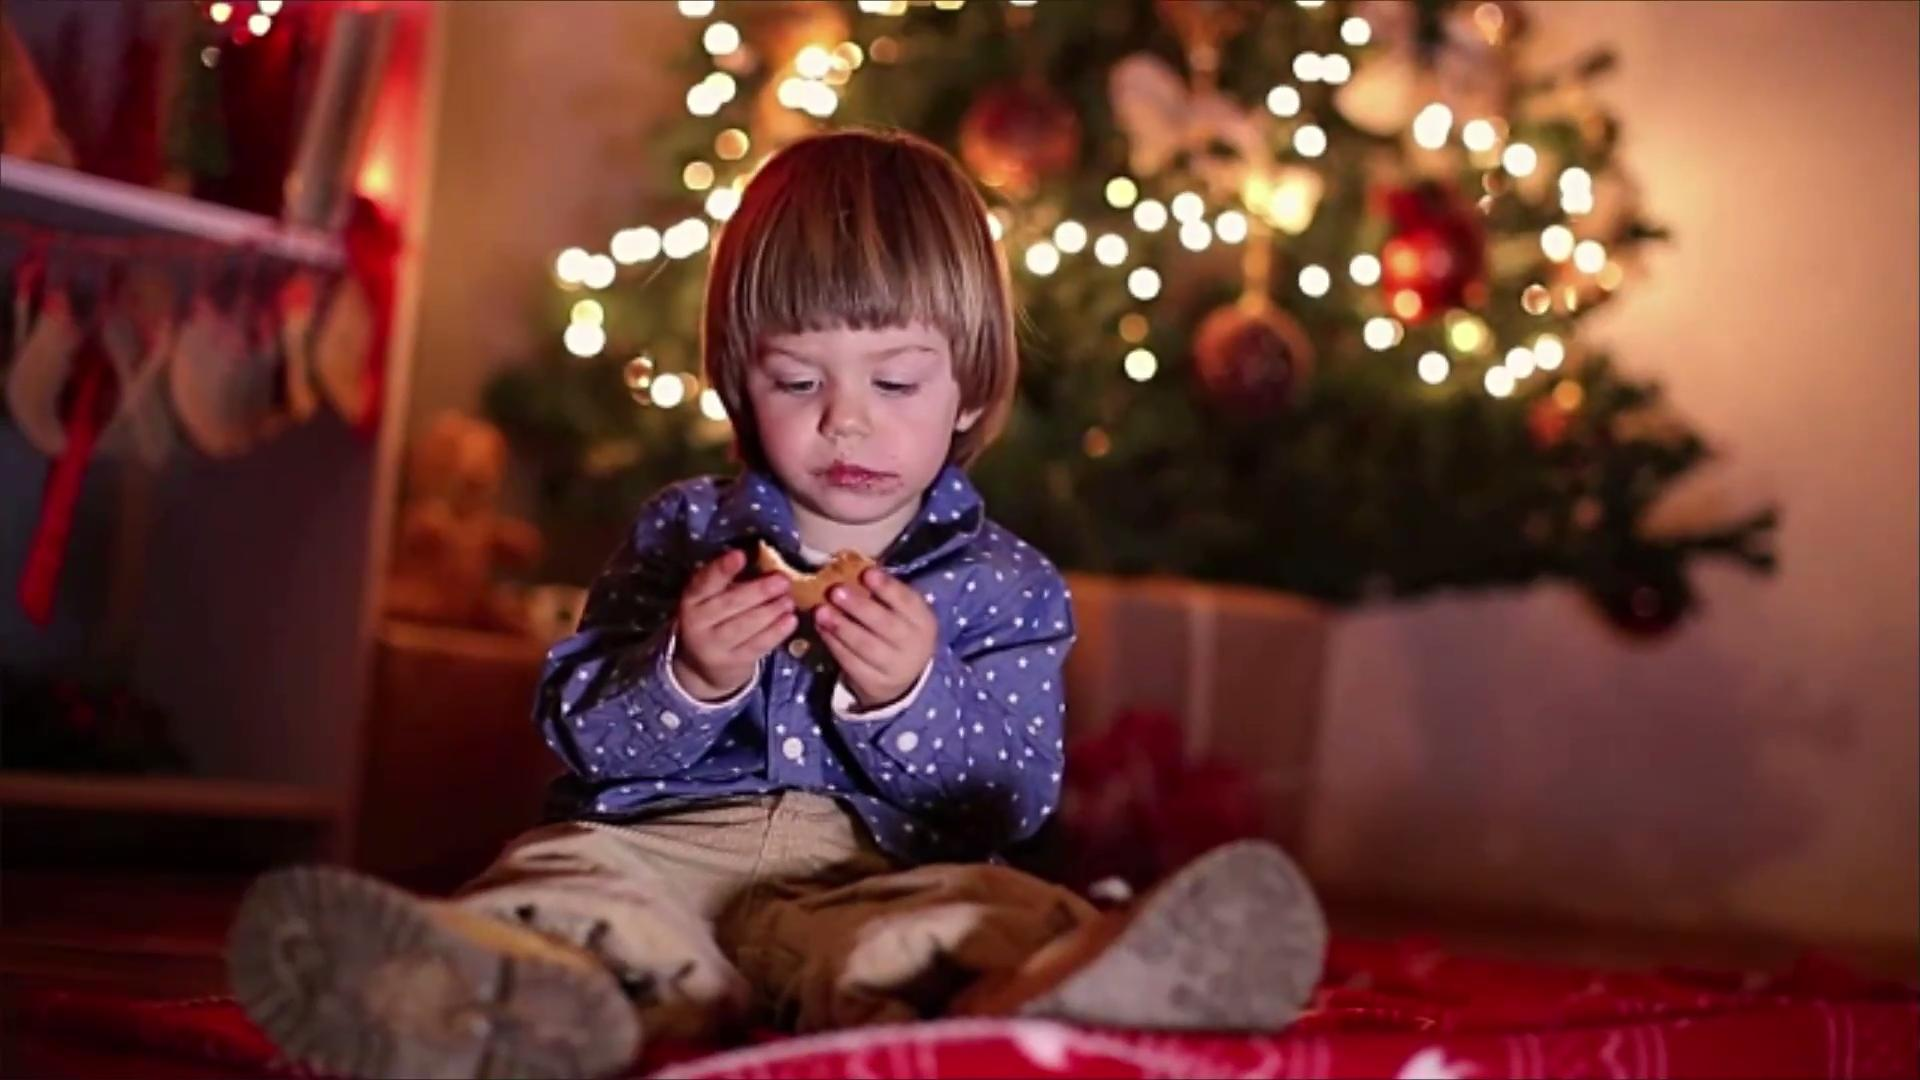 The Best Cookies To Pair With Your Favorite Christmas Movies